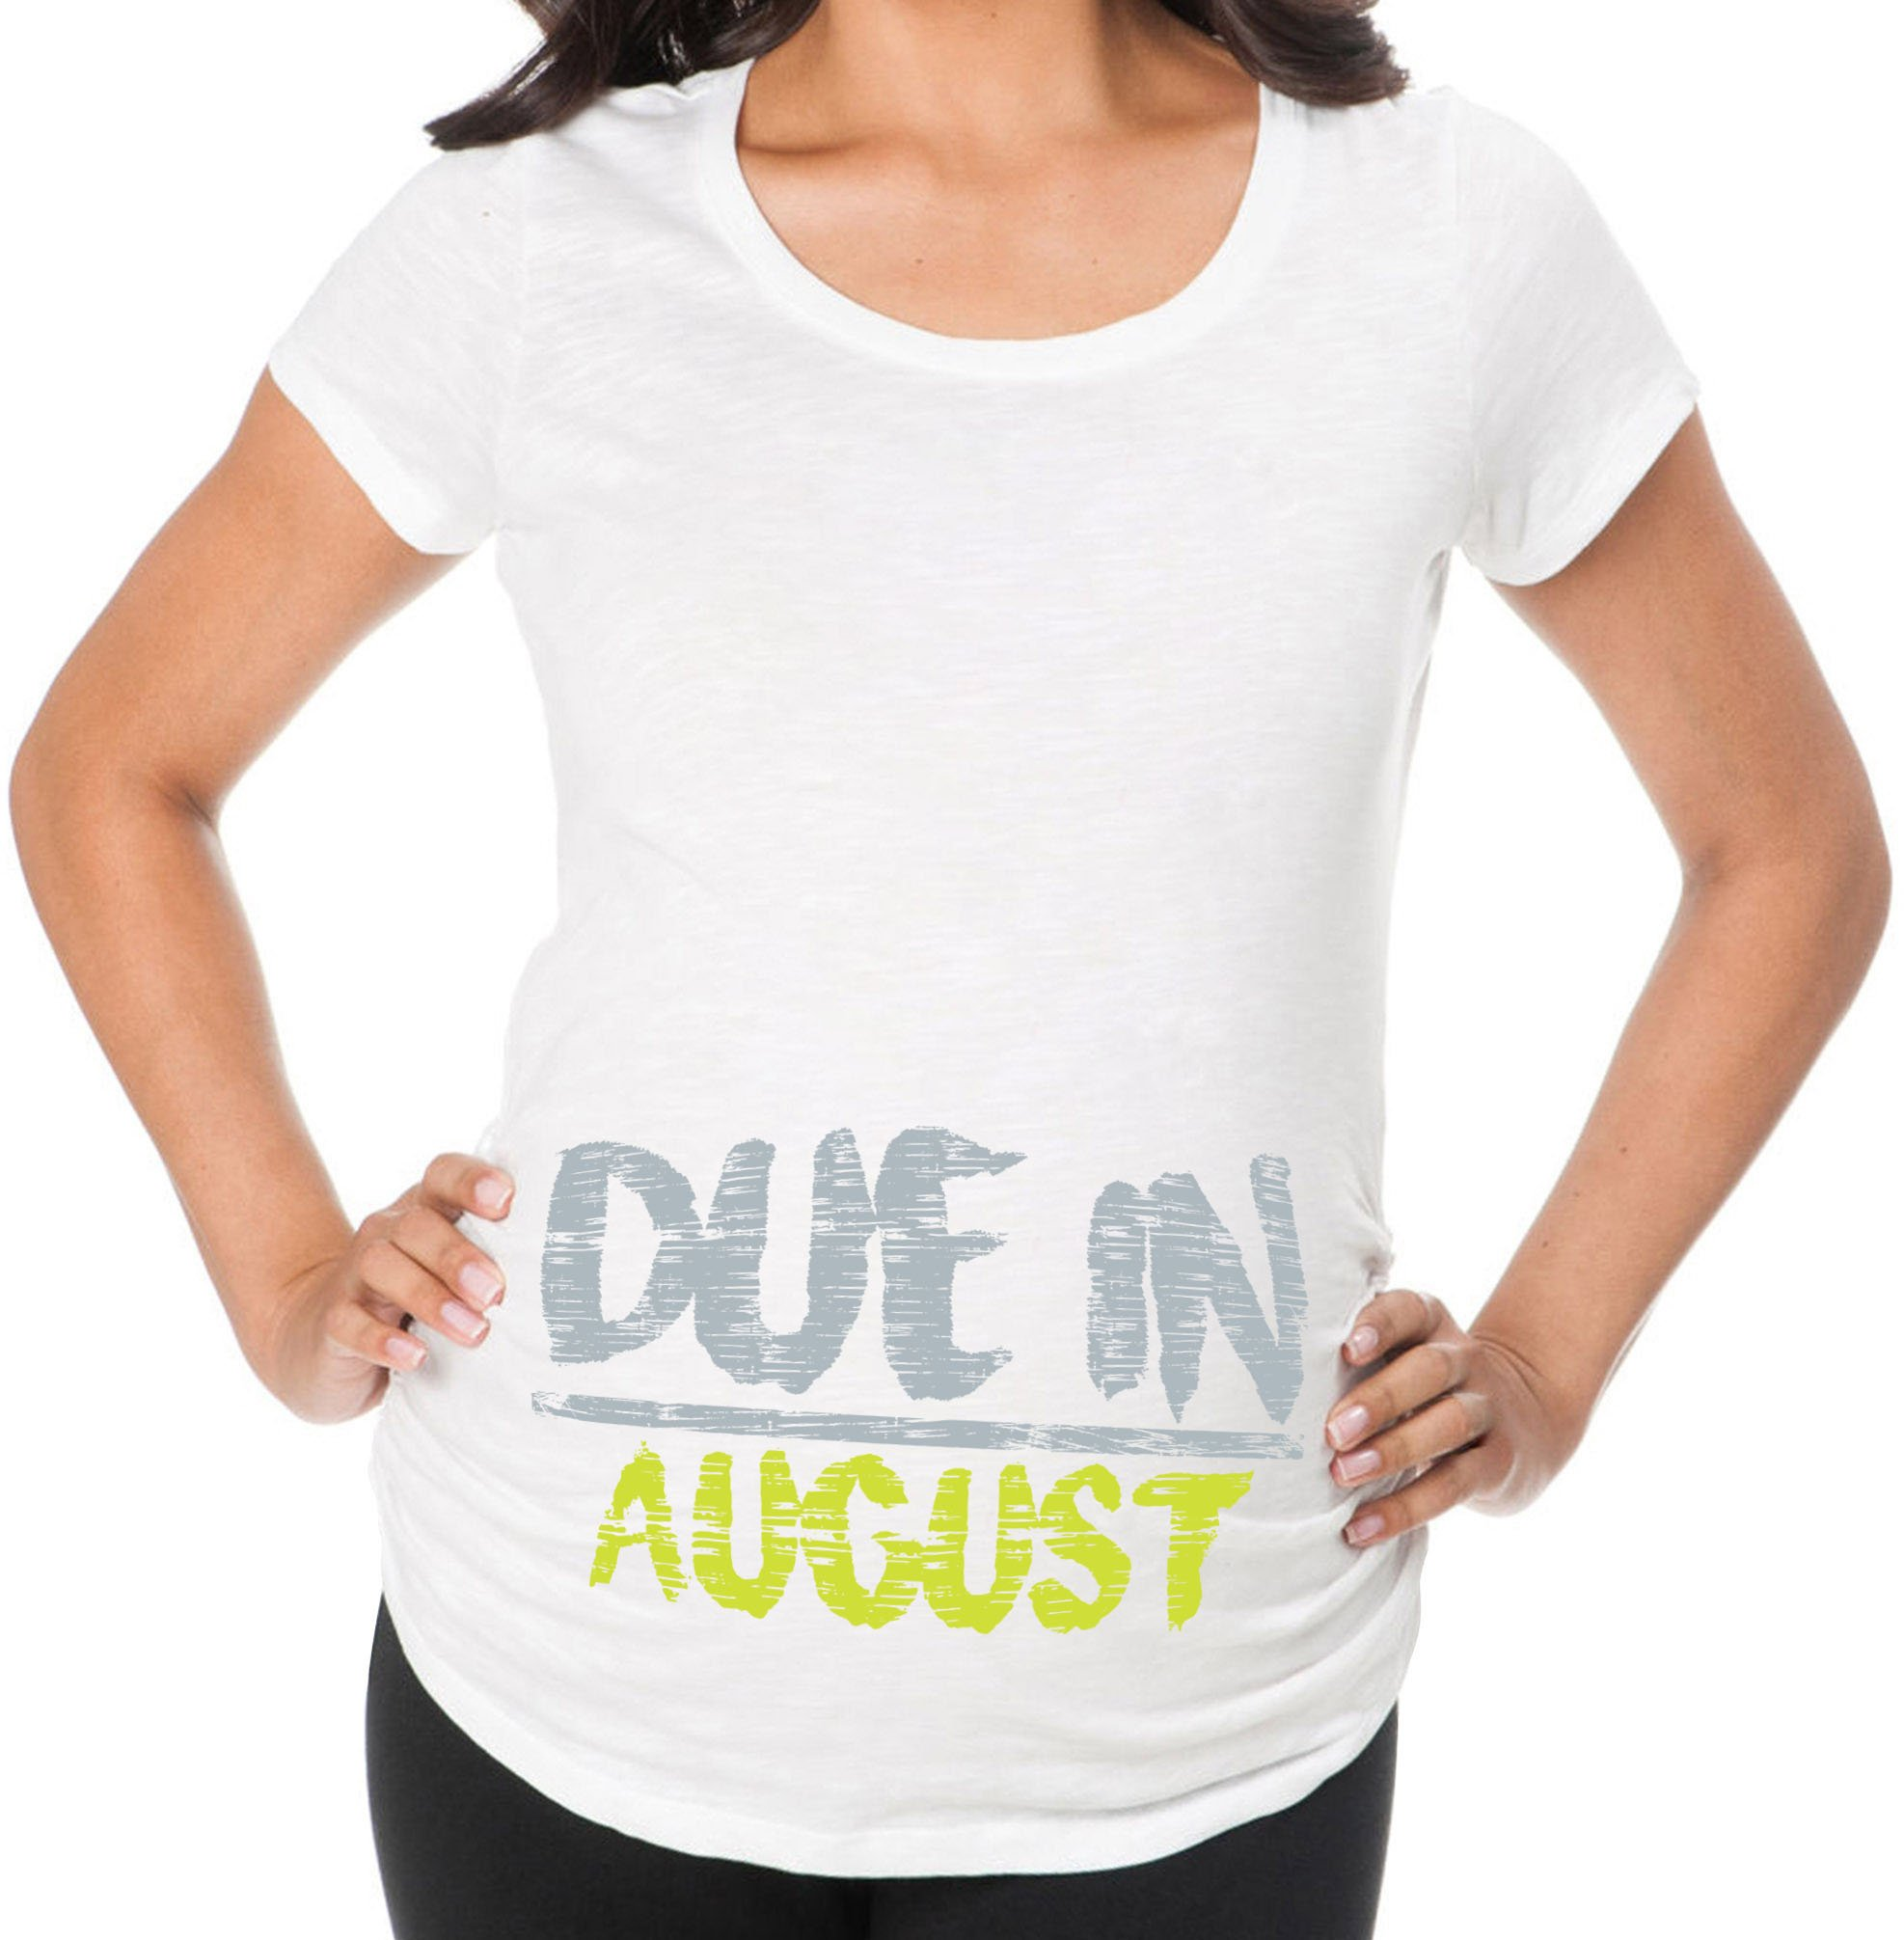 Awkward Styles Due in August Pregnancy Announcement Maternity T Shirt Mom to Be Birth Announcement White 2XL